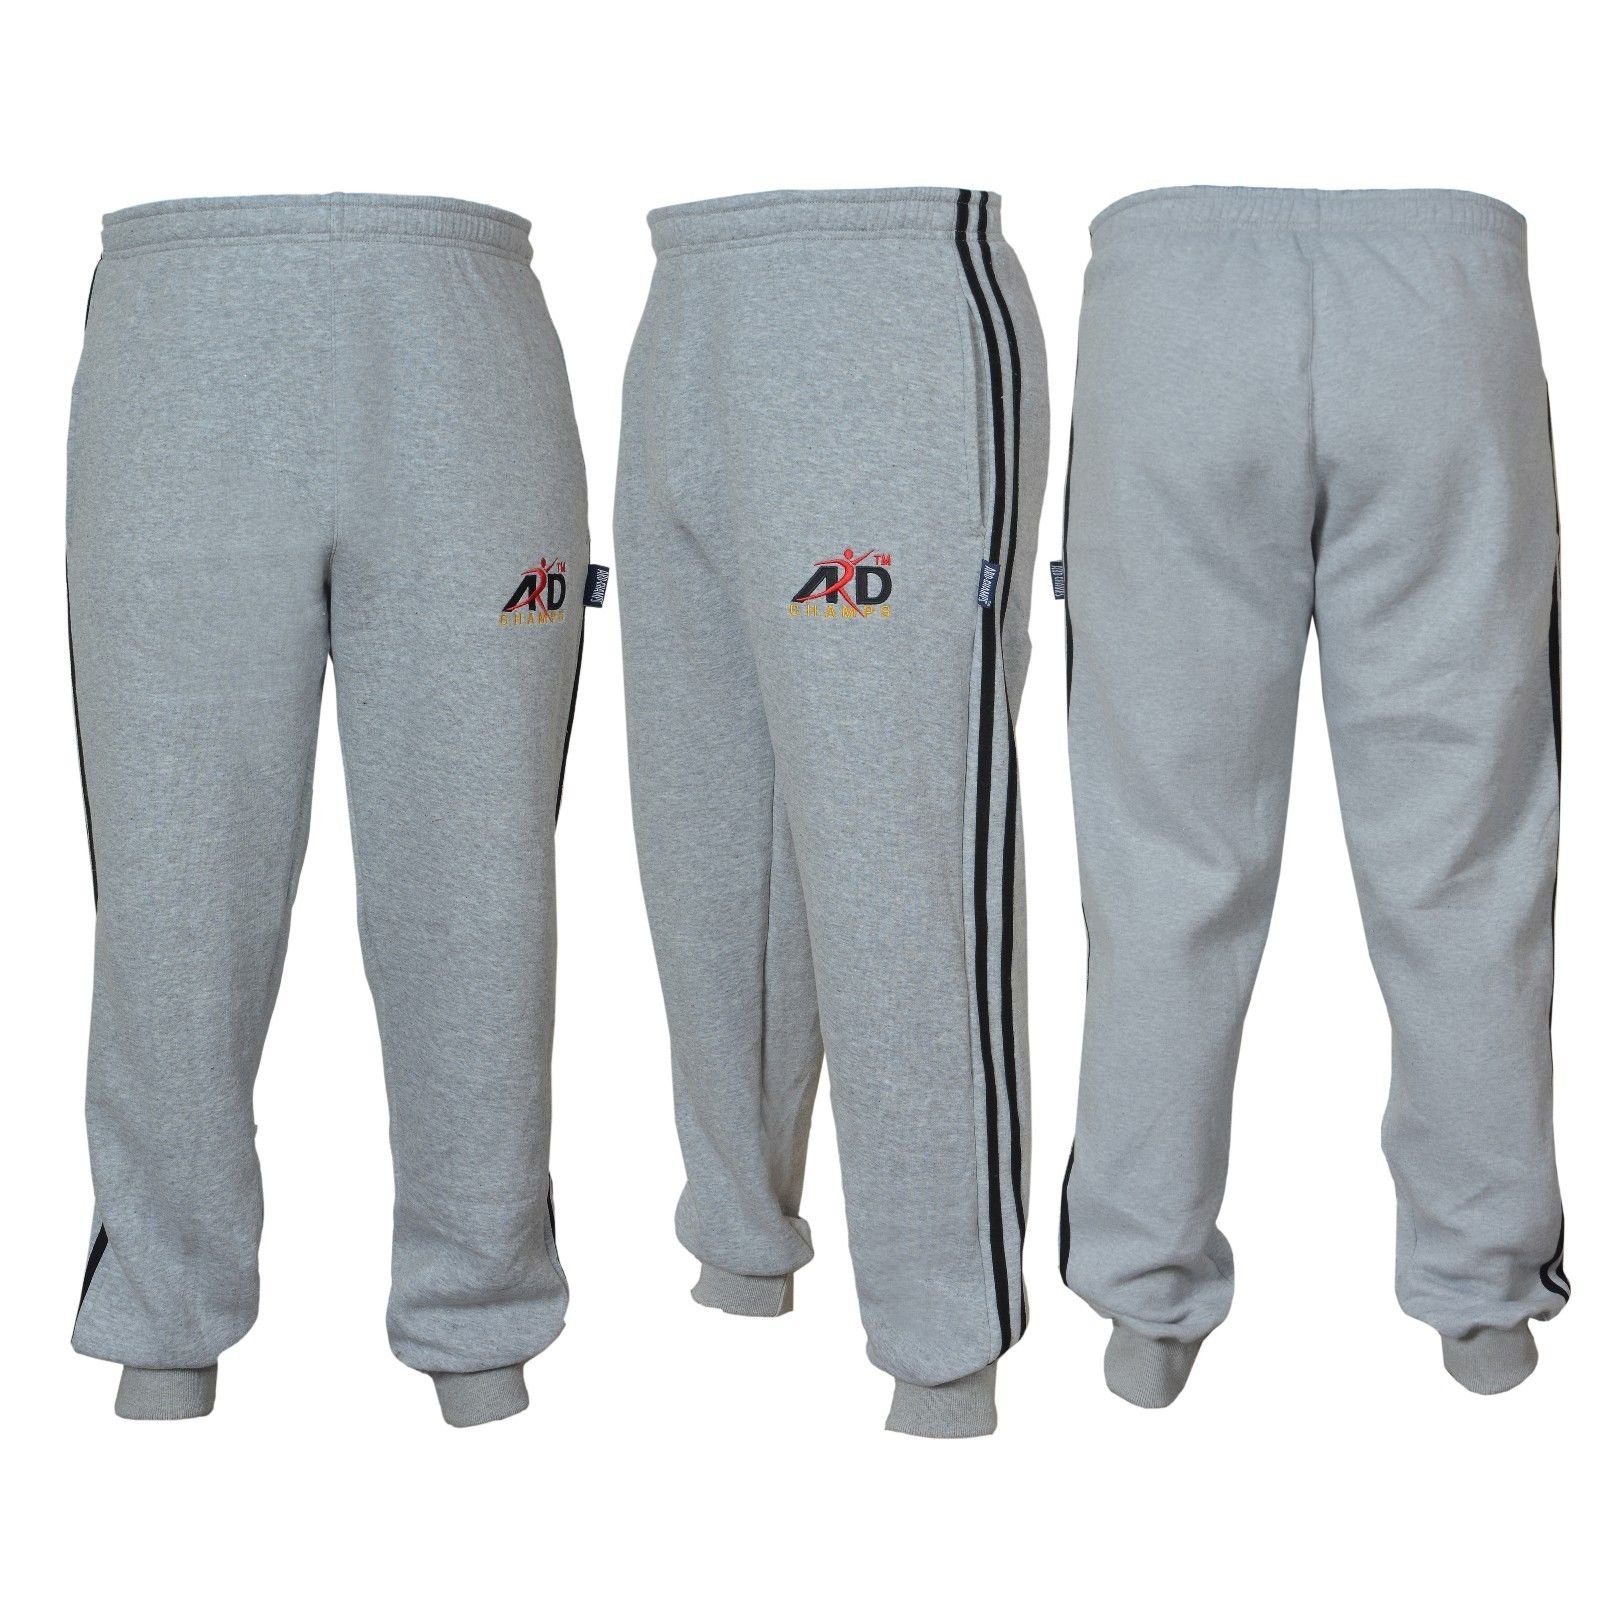 ARD CHAMPS™ Cotton Fleece Trouser MMA Gym Boxing Running Jogging Trousers Grey Small